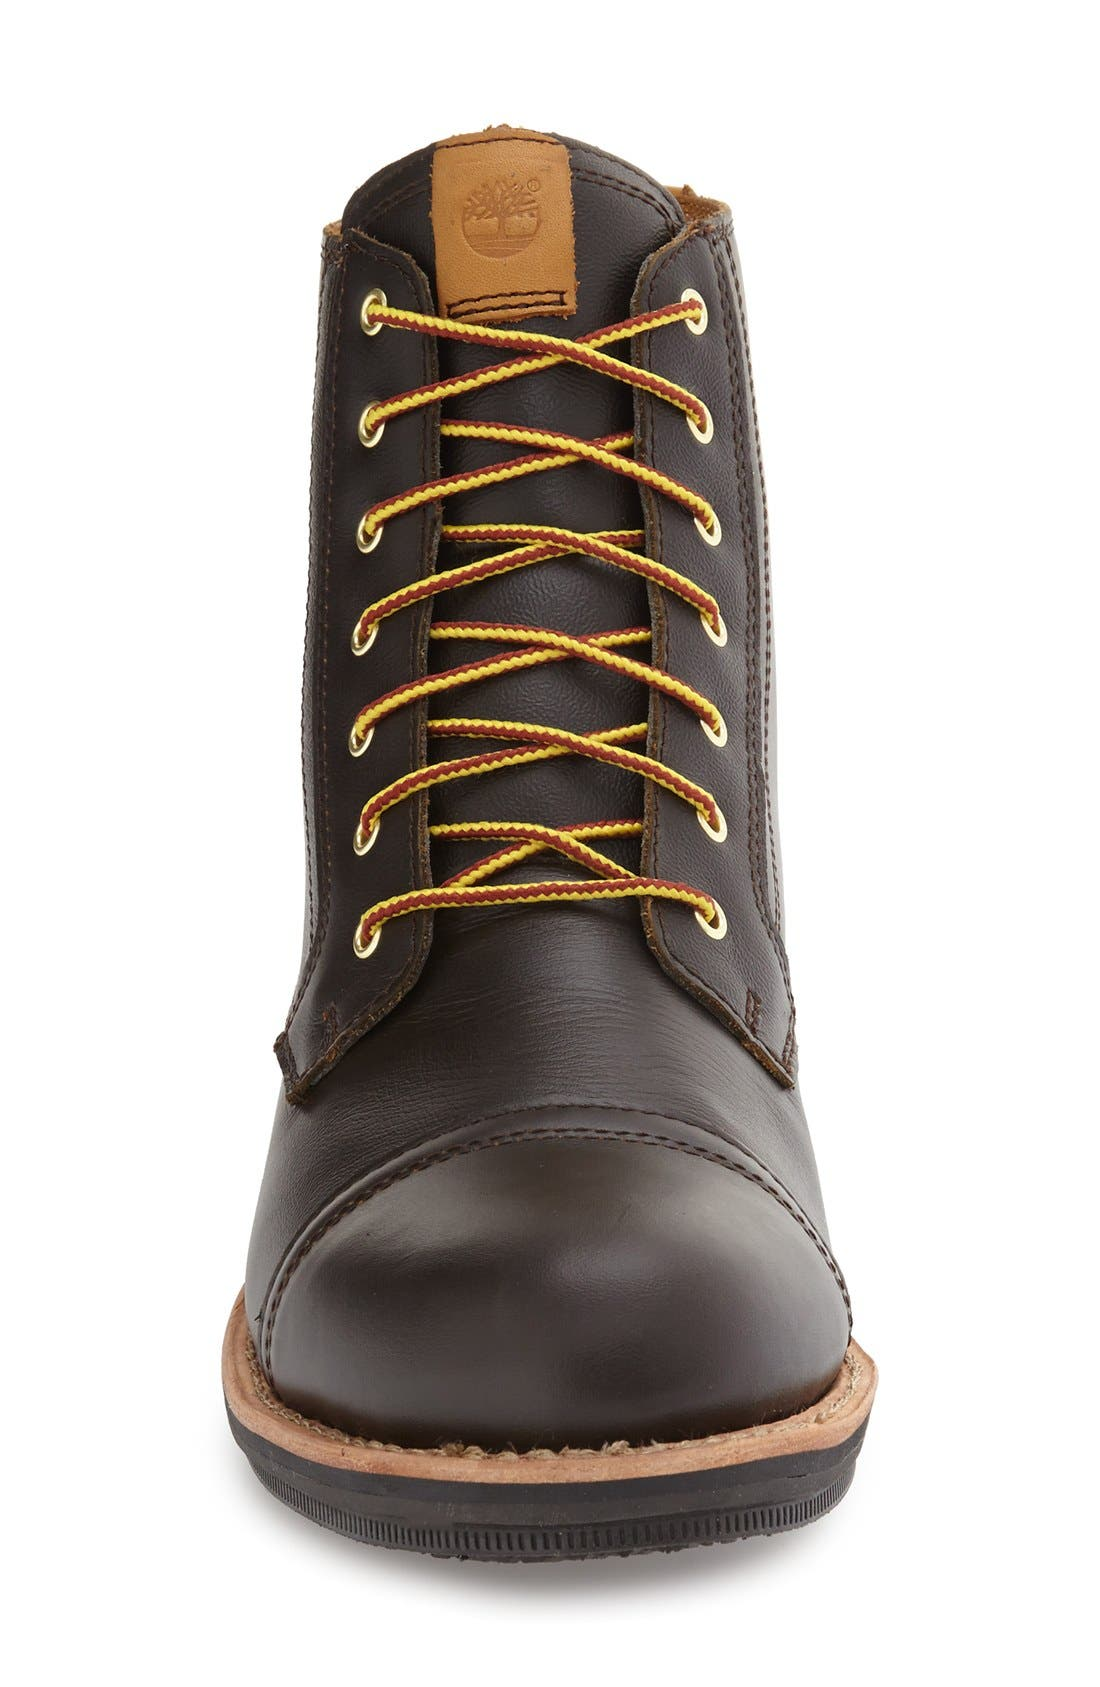 TIMBERLAND,                             'Willoughby' Cap Toe Boot,                             Alternate thumbnail 3, color,                             200